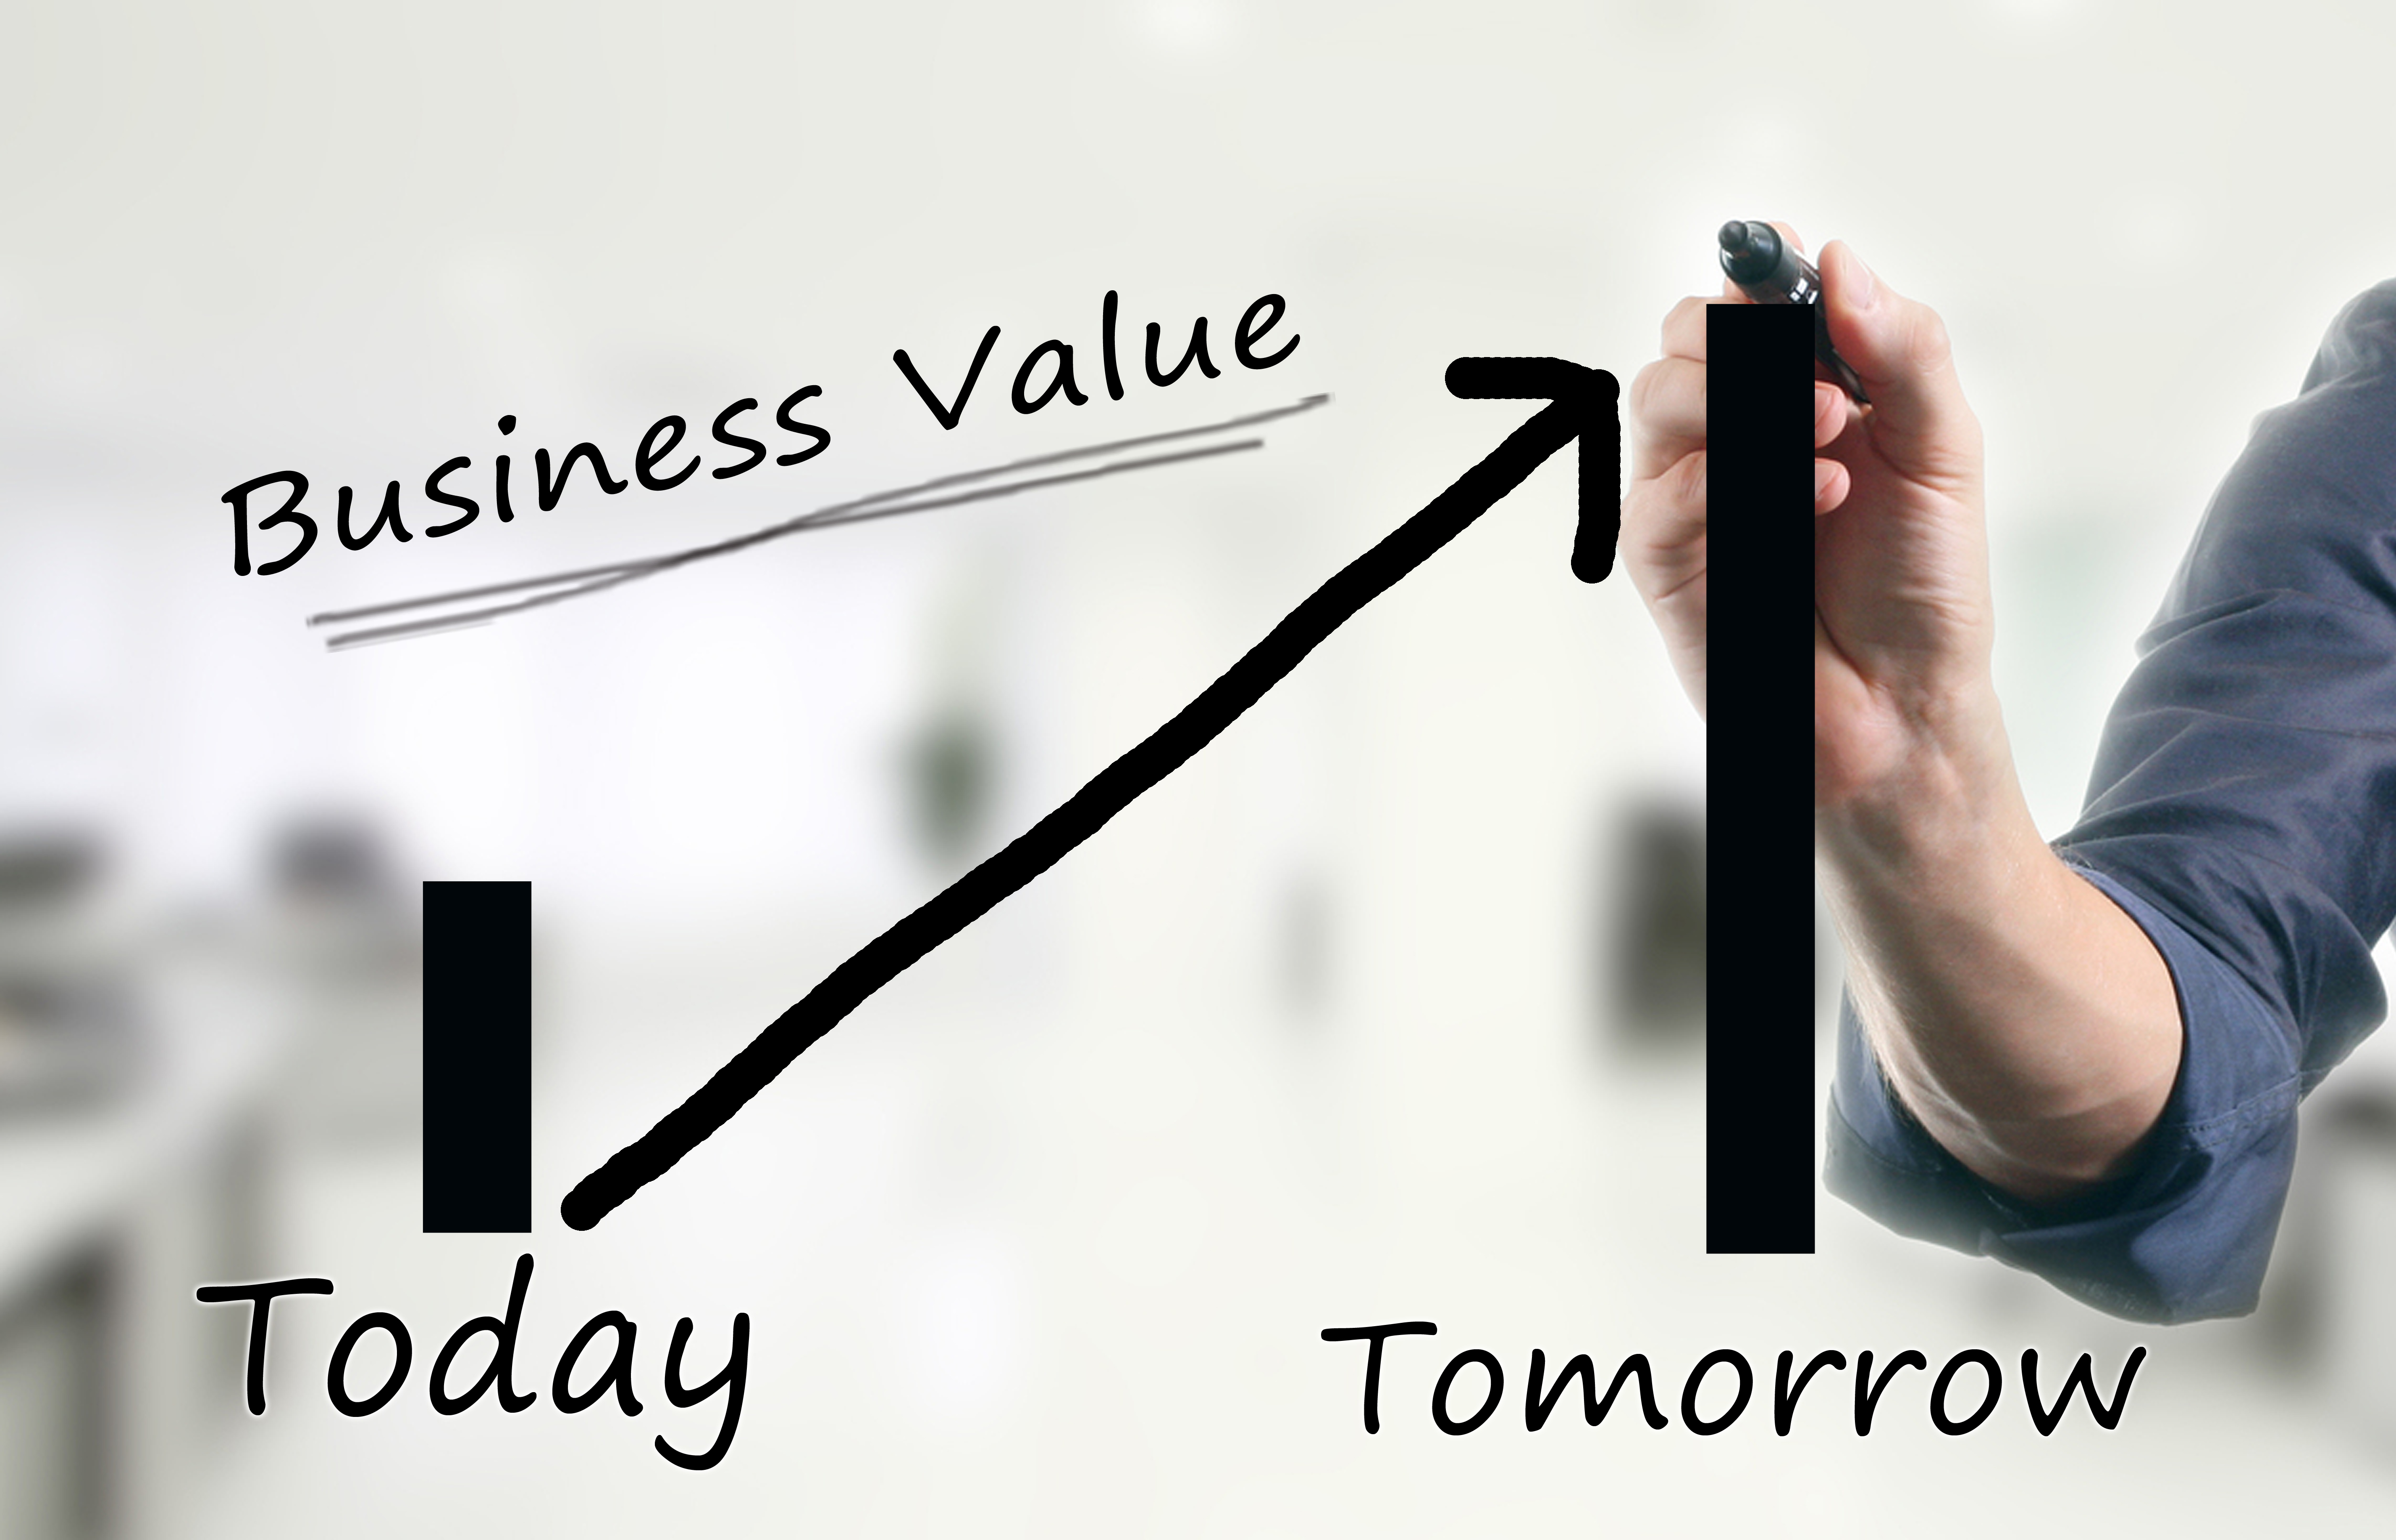 ... valuation, that business value will increase significantly tomorrow